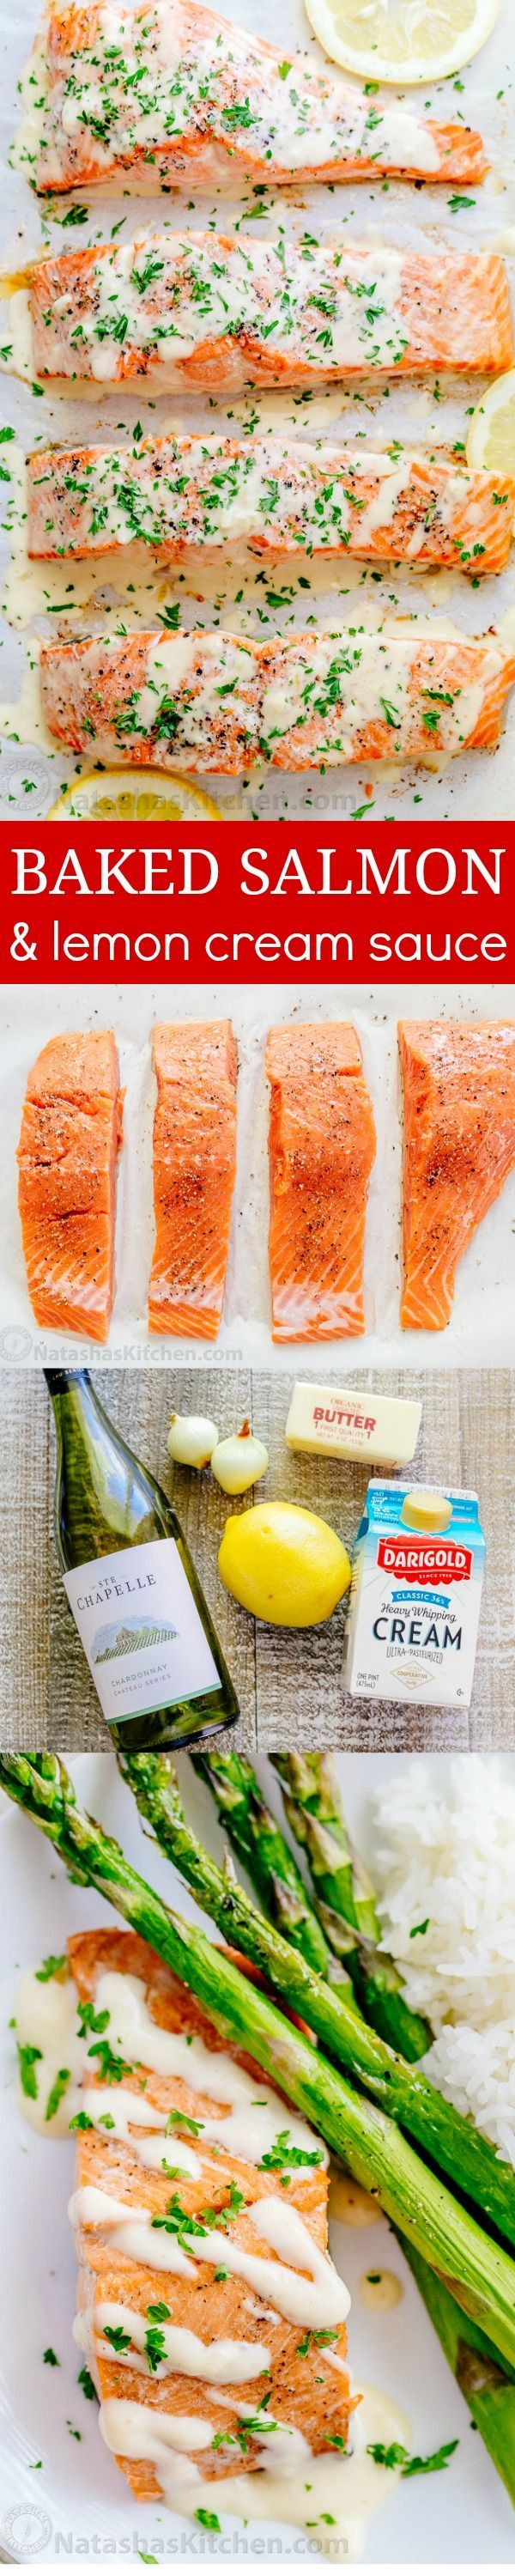 Baked Salmon with flavorful and simple lemon cream sauce. Lemon beurre blanc, will be your secret weapon for seafood recipes. Gourmet flavors at home! | Oven Baked Salmon with flavorful and simple lemon cream sauce. Lemon beurre blanc, will be your secret weapon for seafood recipes. Gourmet flavors at home! |